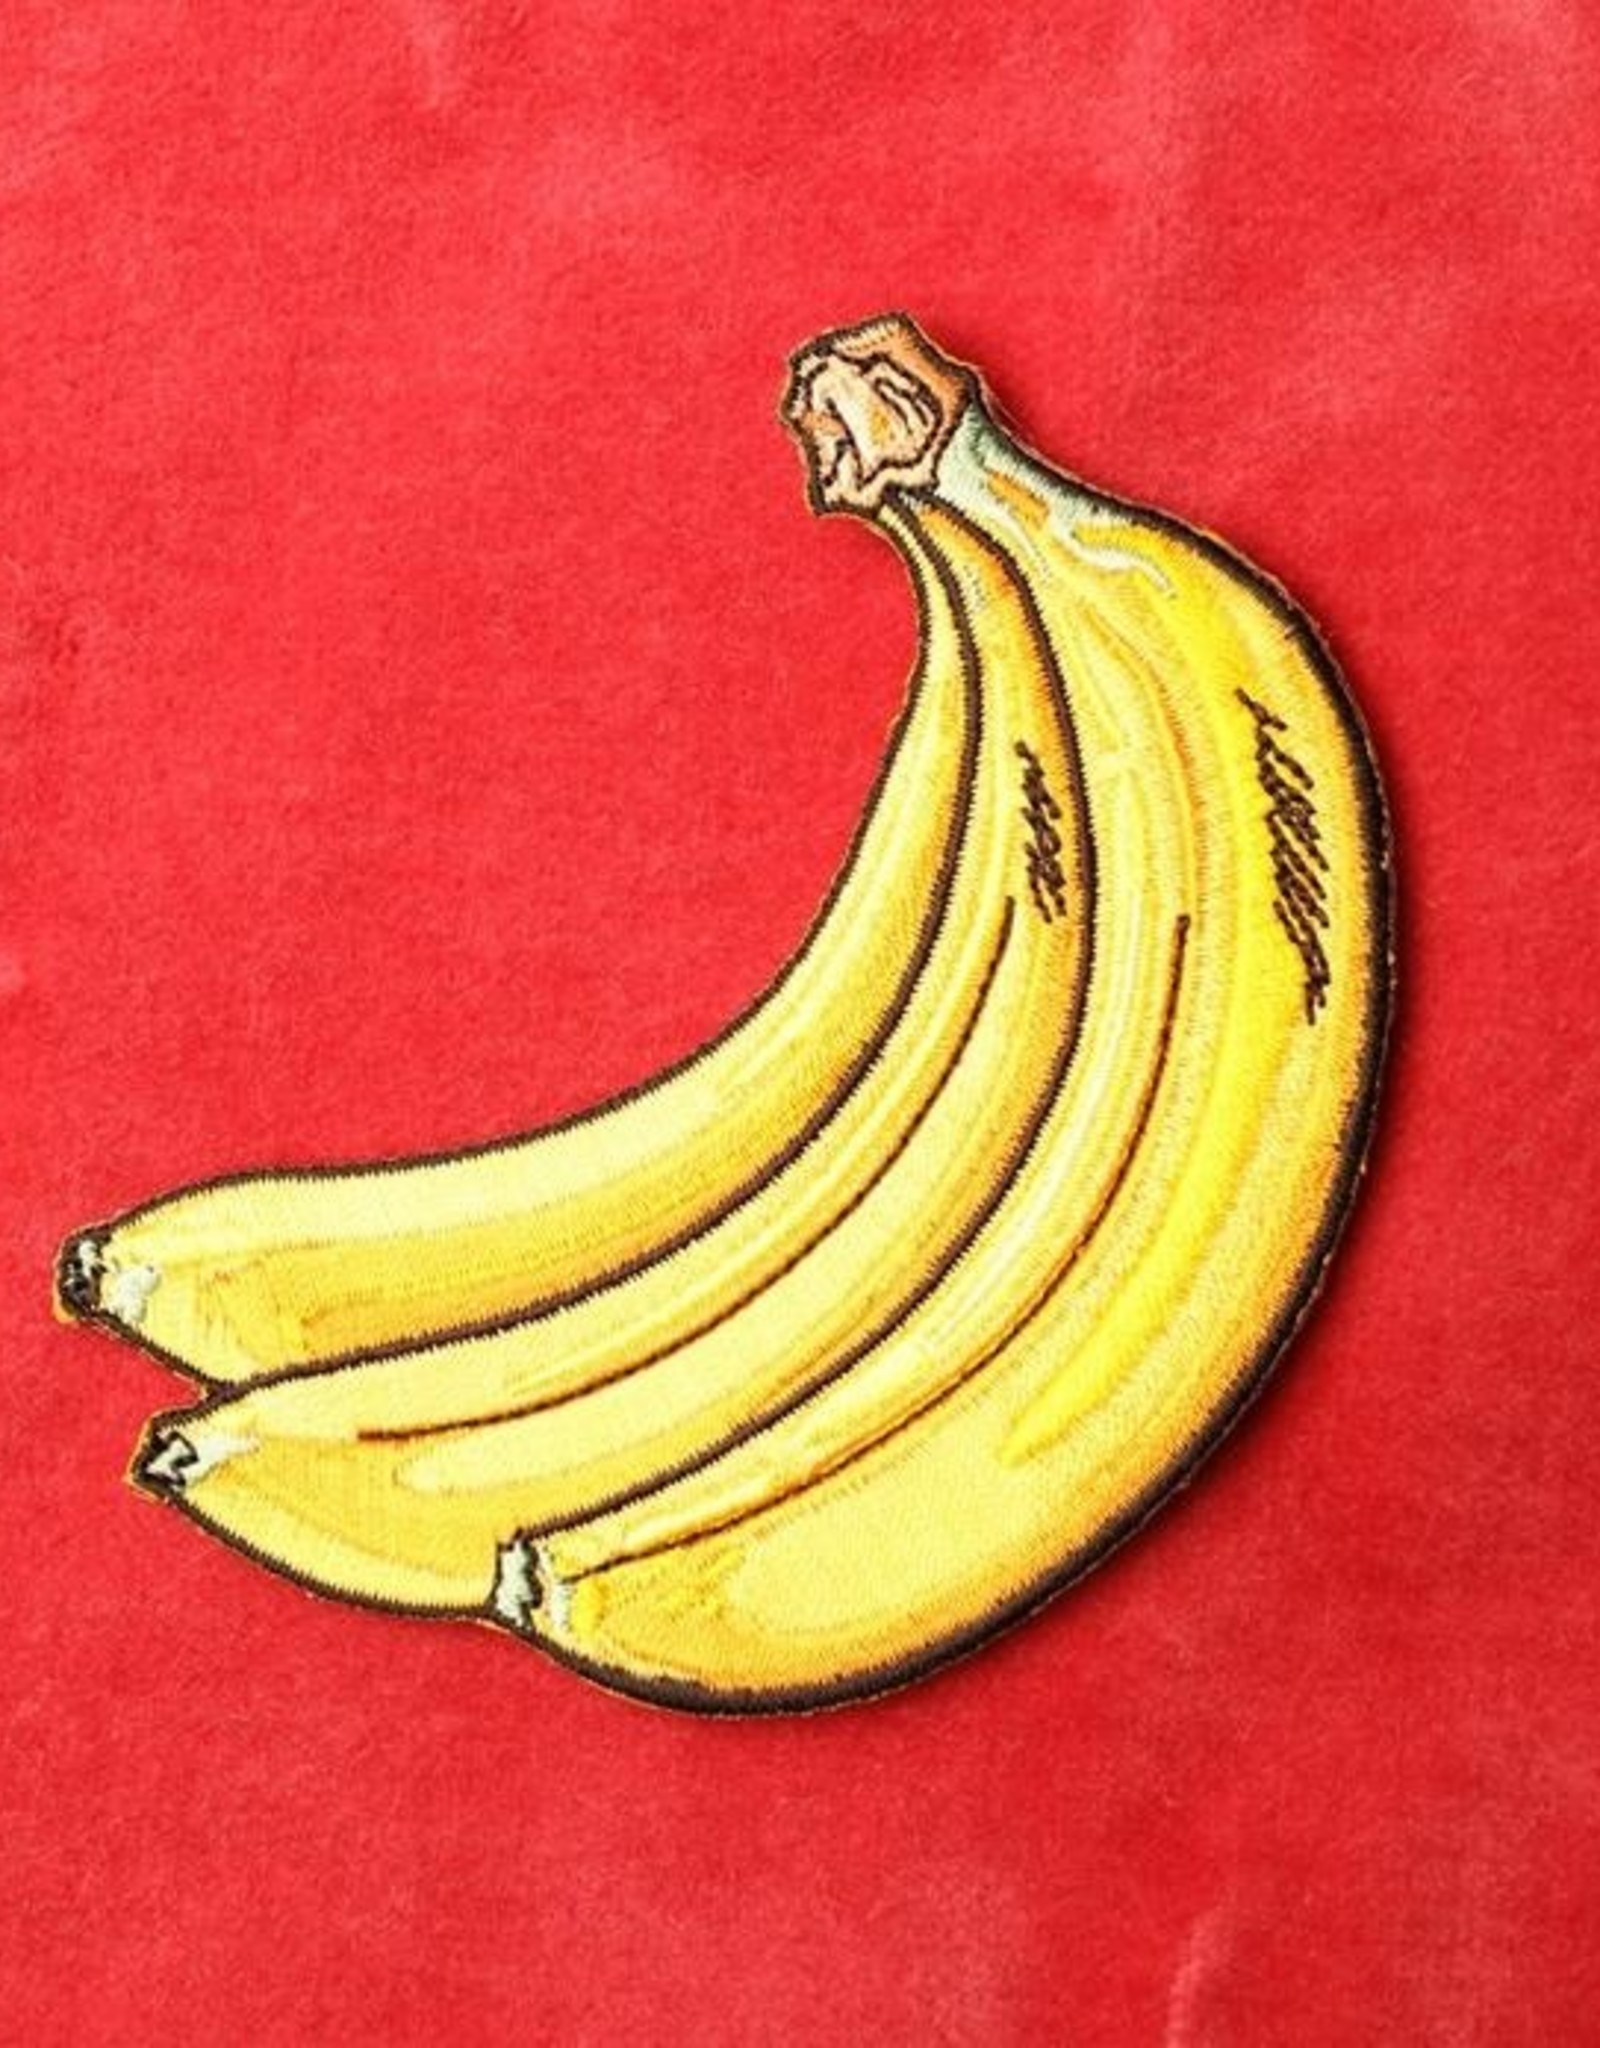 Patches and Pins Patch: Bananas